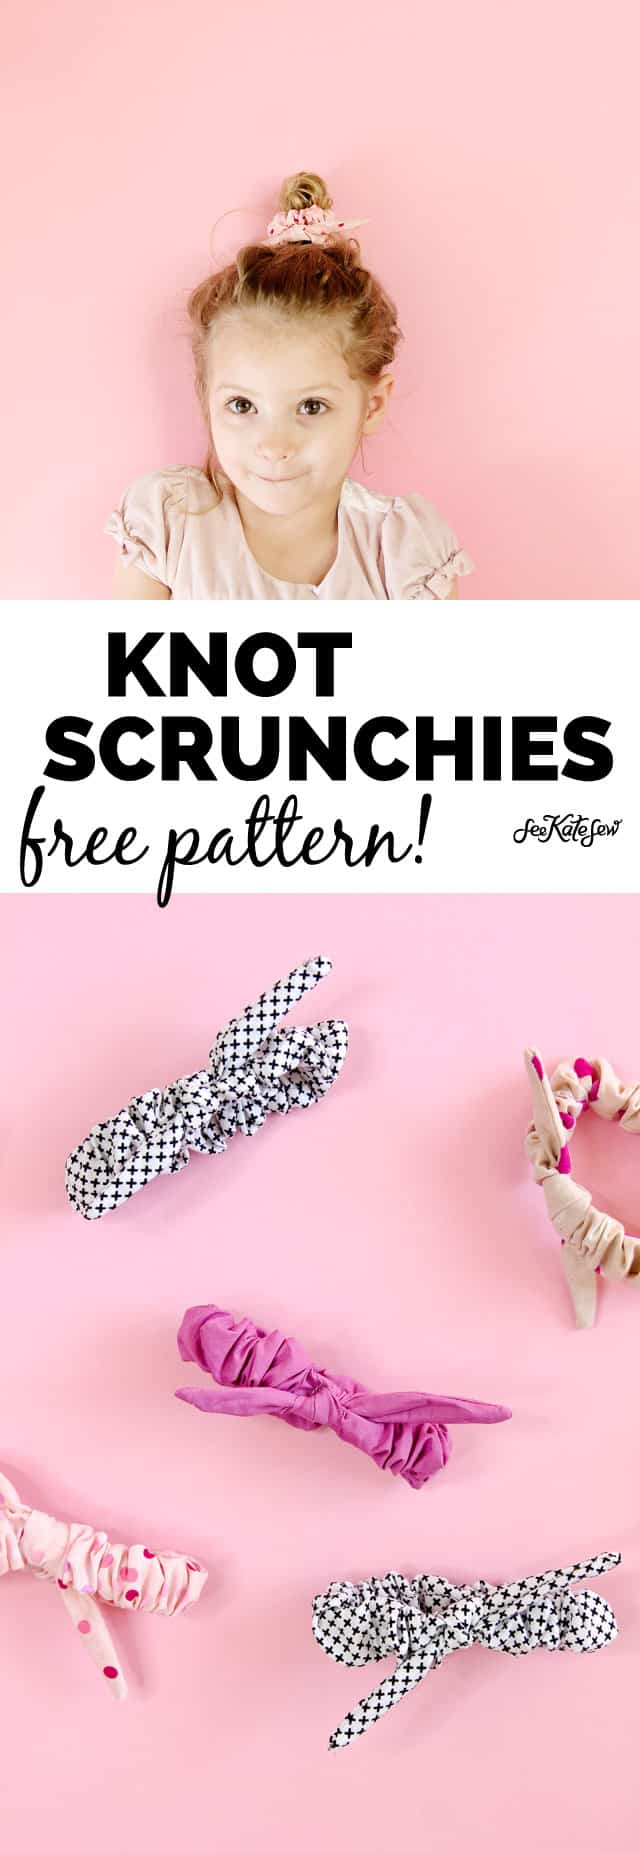 Knot Scrunchies free pattern | diy knotted scrunchie tutorial | how to make a scrunchie | diy scrunchie | handmade scrunchie tutorial || See Kate Sew #scrunchietutorial #diyscrunchie #handmadescrunchie